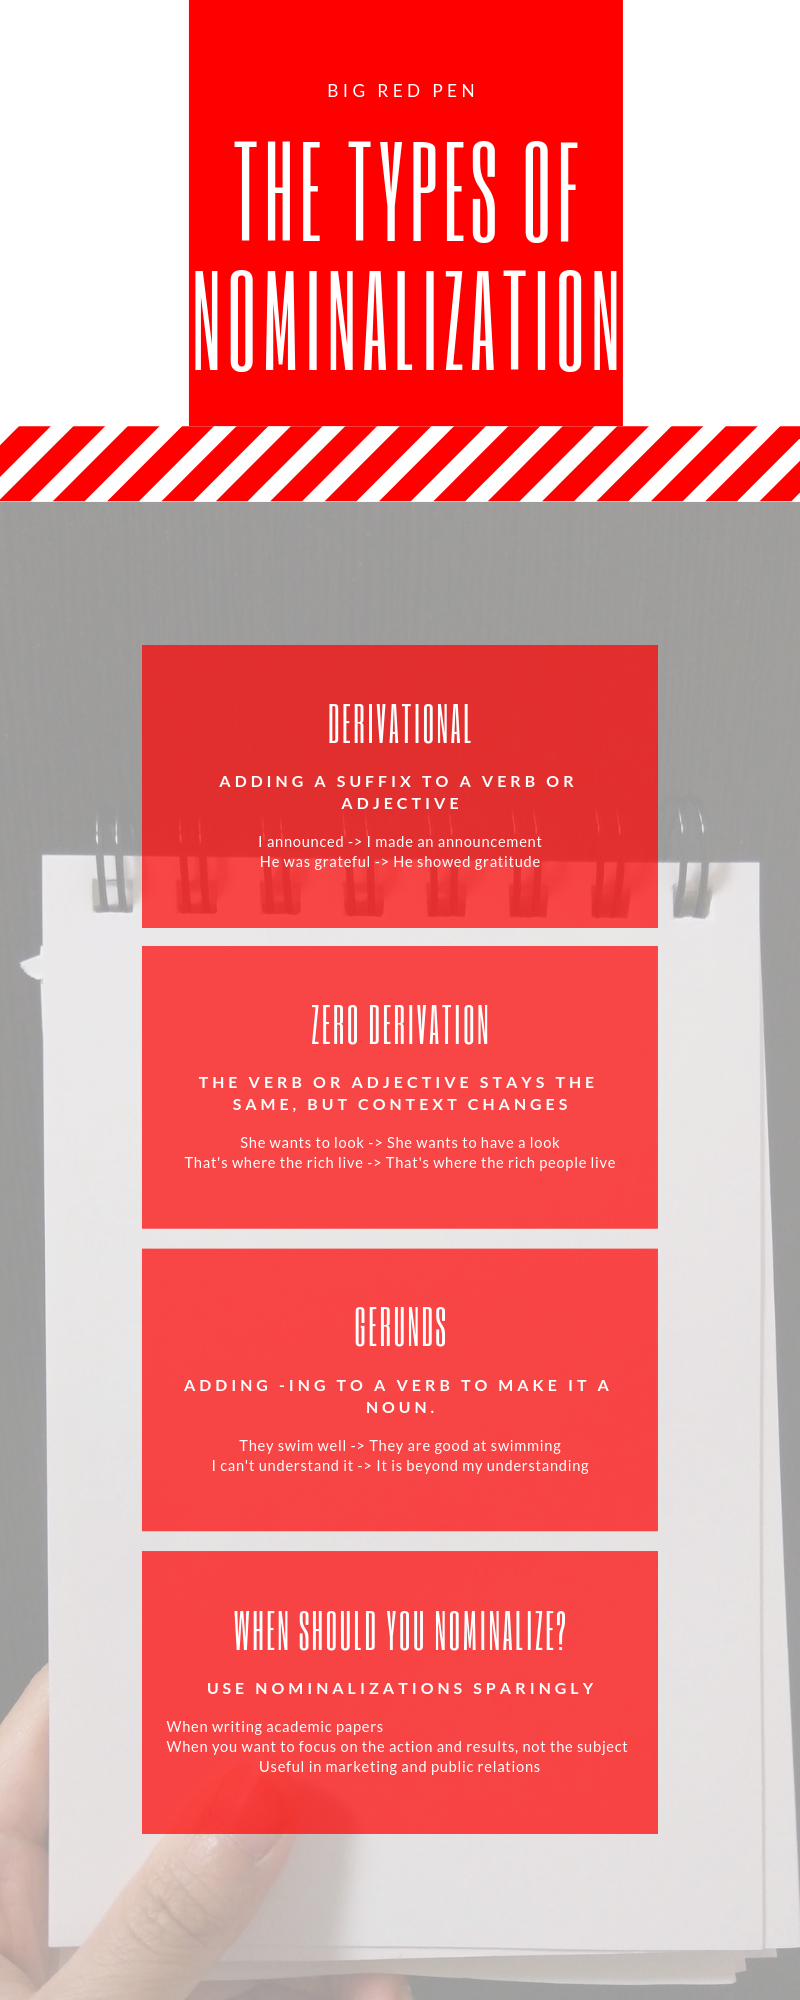 Nominalization infographic.png